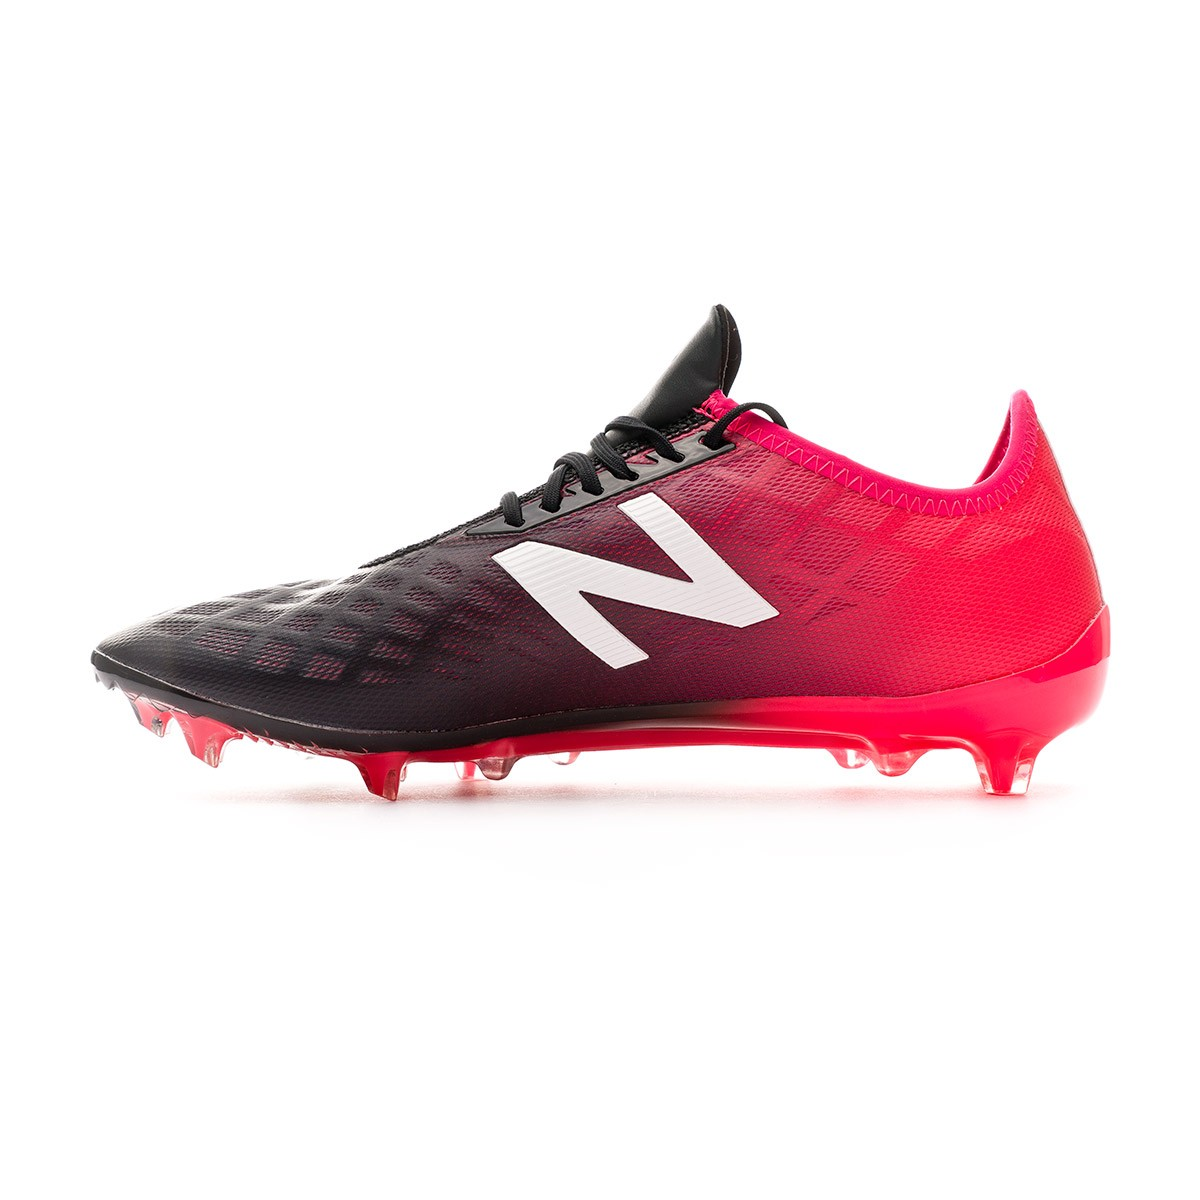 7a1cad750c3a Football Boots New Balance Furon 4.0 Pro FG Bright cherry - Football store  Fútbol Emotion